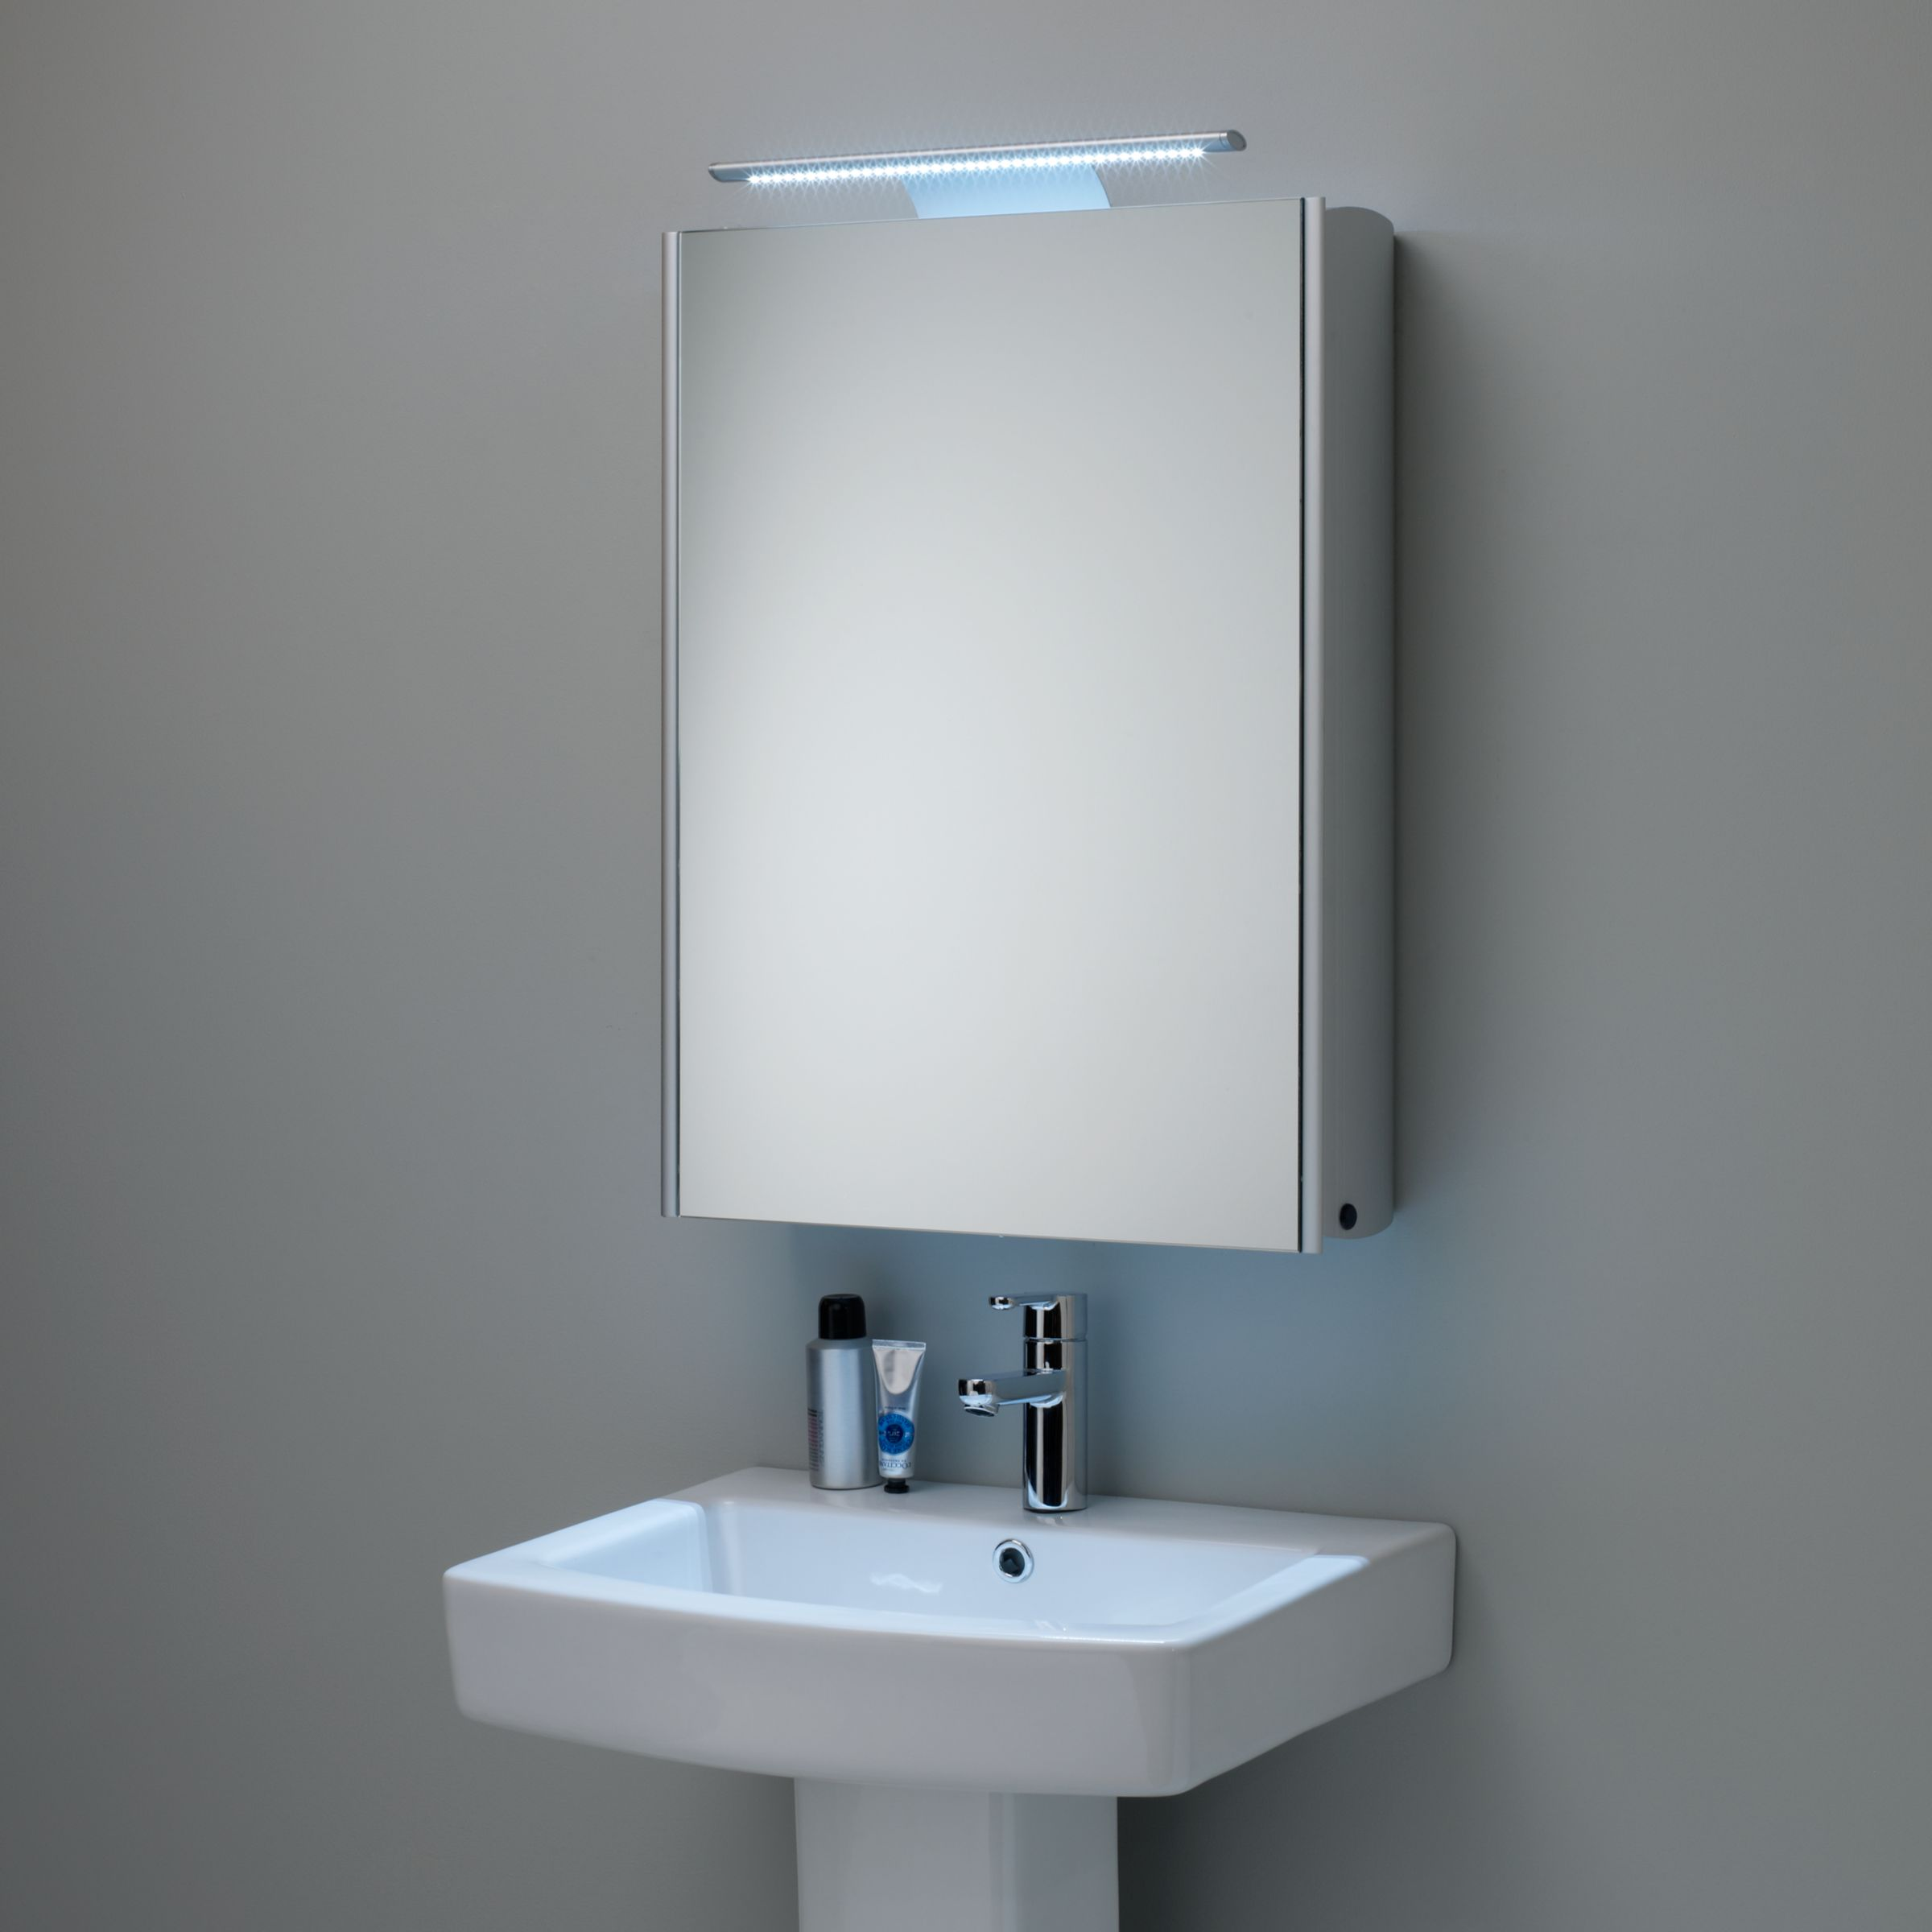 Buy Roper Rhodes Equinox Illuminated Single Mirrored